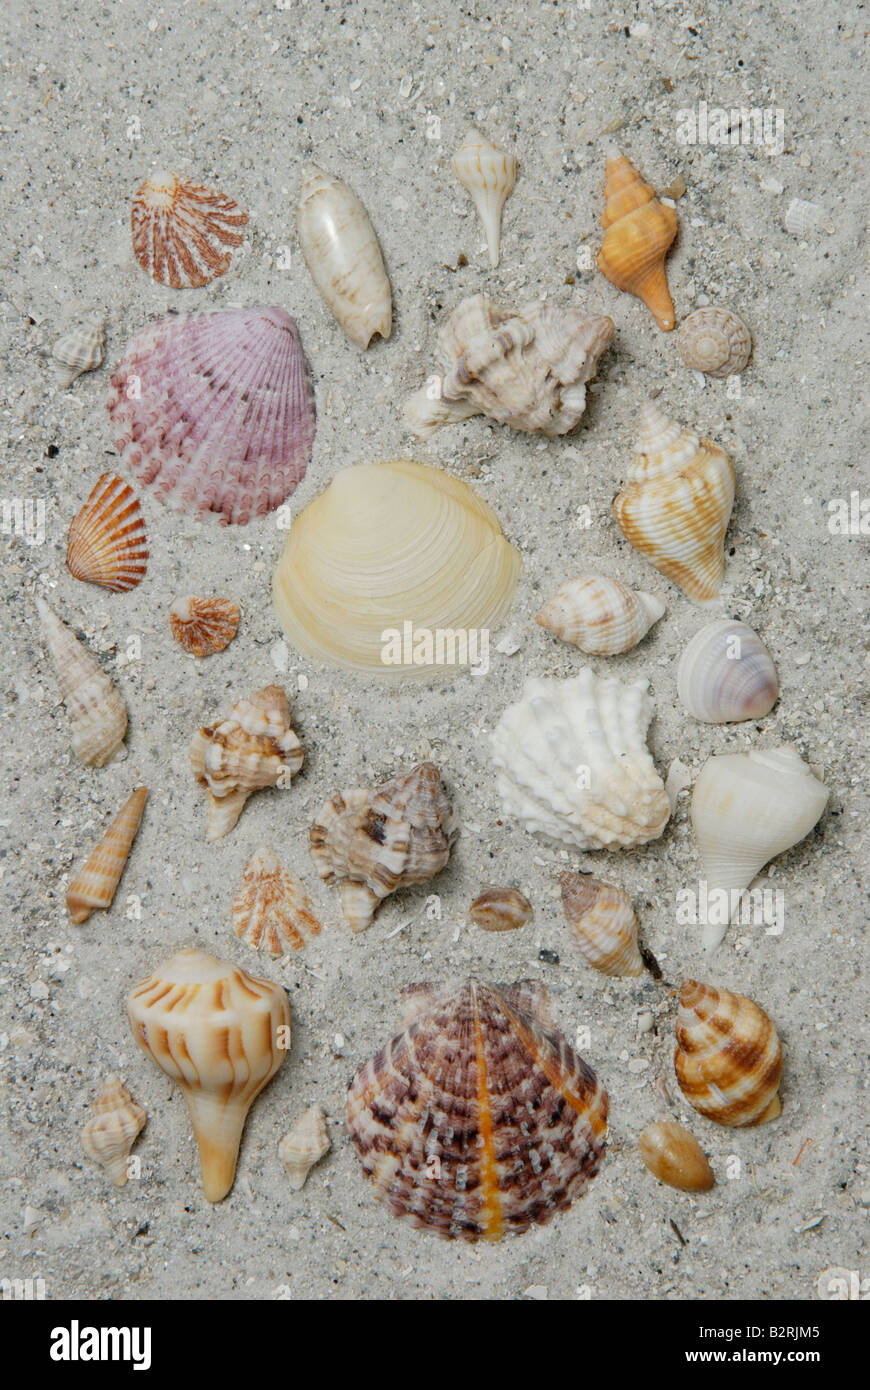 A variety of Mollusk shells collected from Sanibel Island Florida Gulf Coast - Stock Image